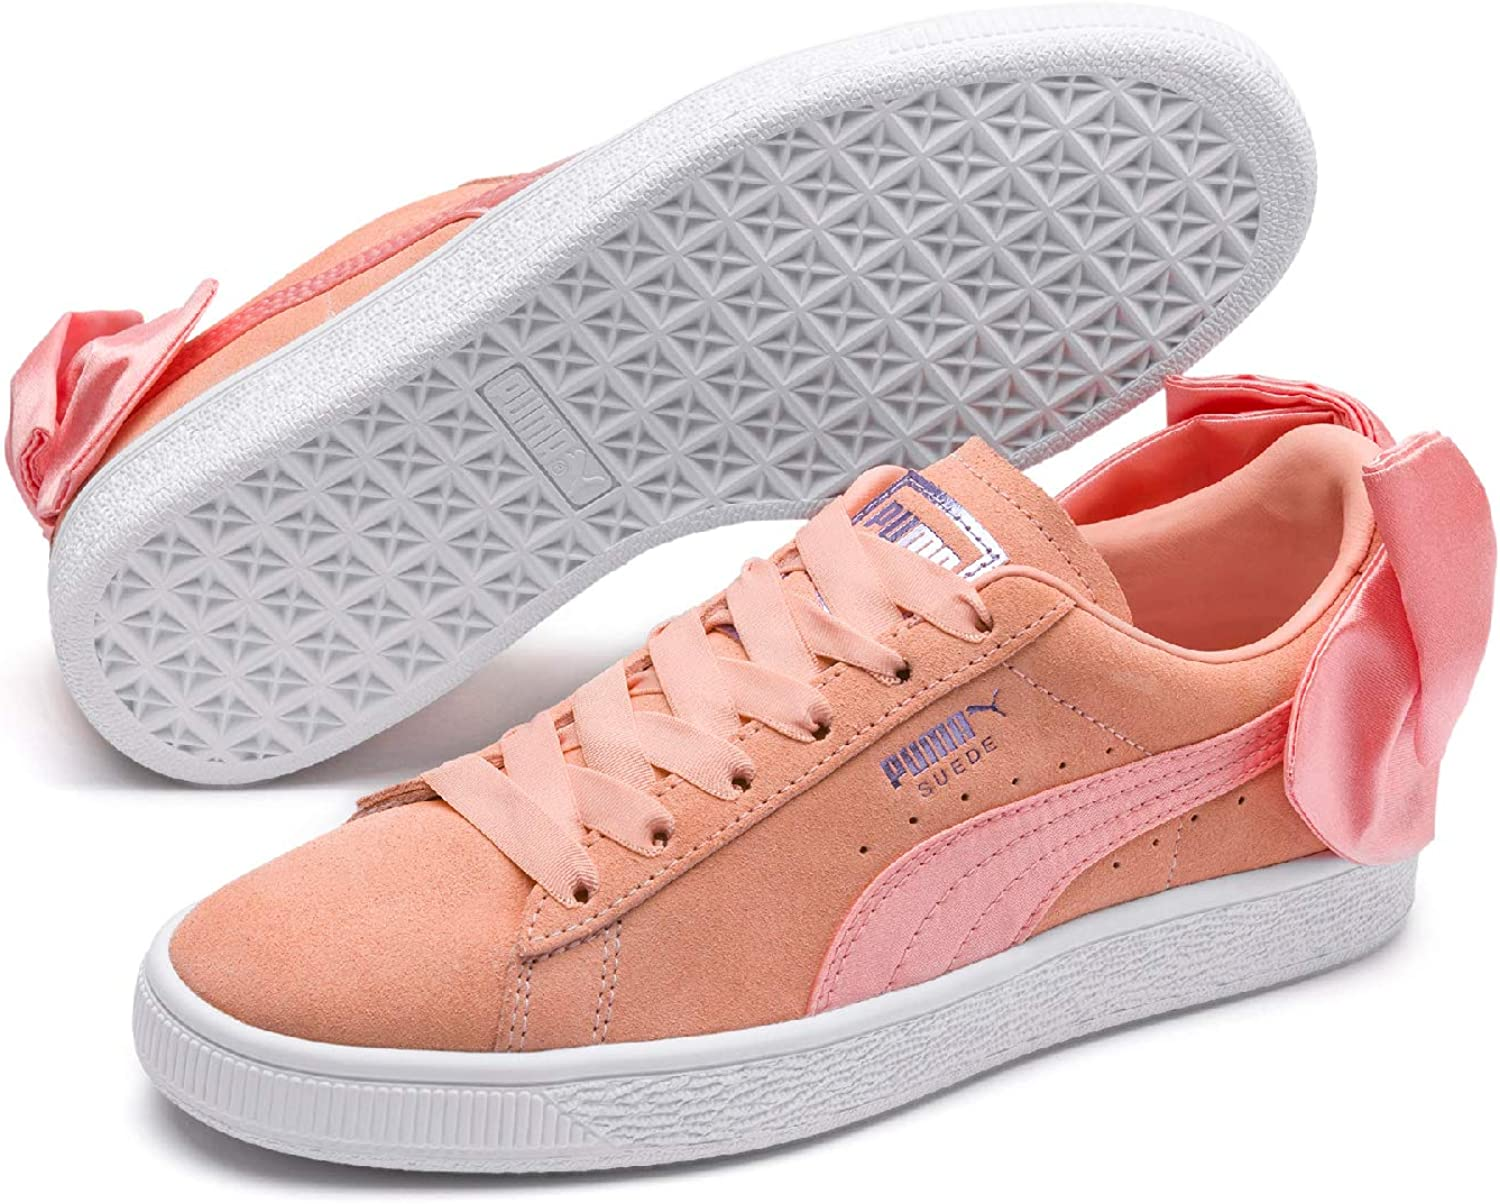 Puma Women's Suede Bow WN's Low-Top Sneakers, Pink (Peach Bud White), 6 UK